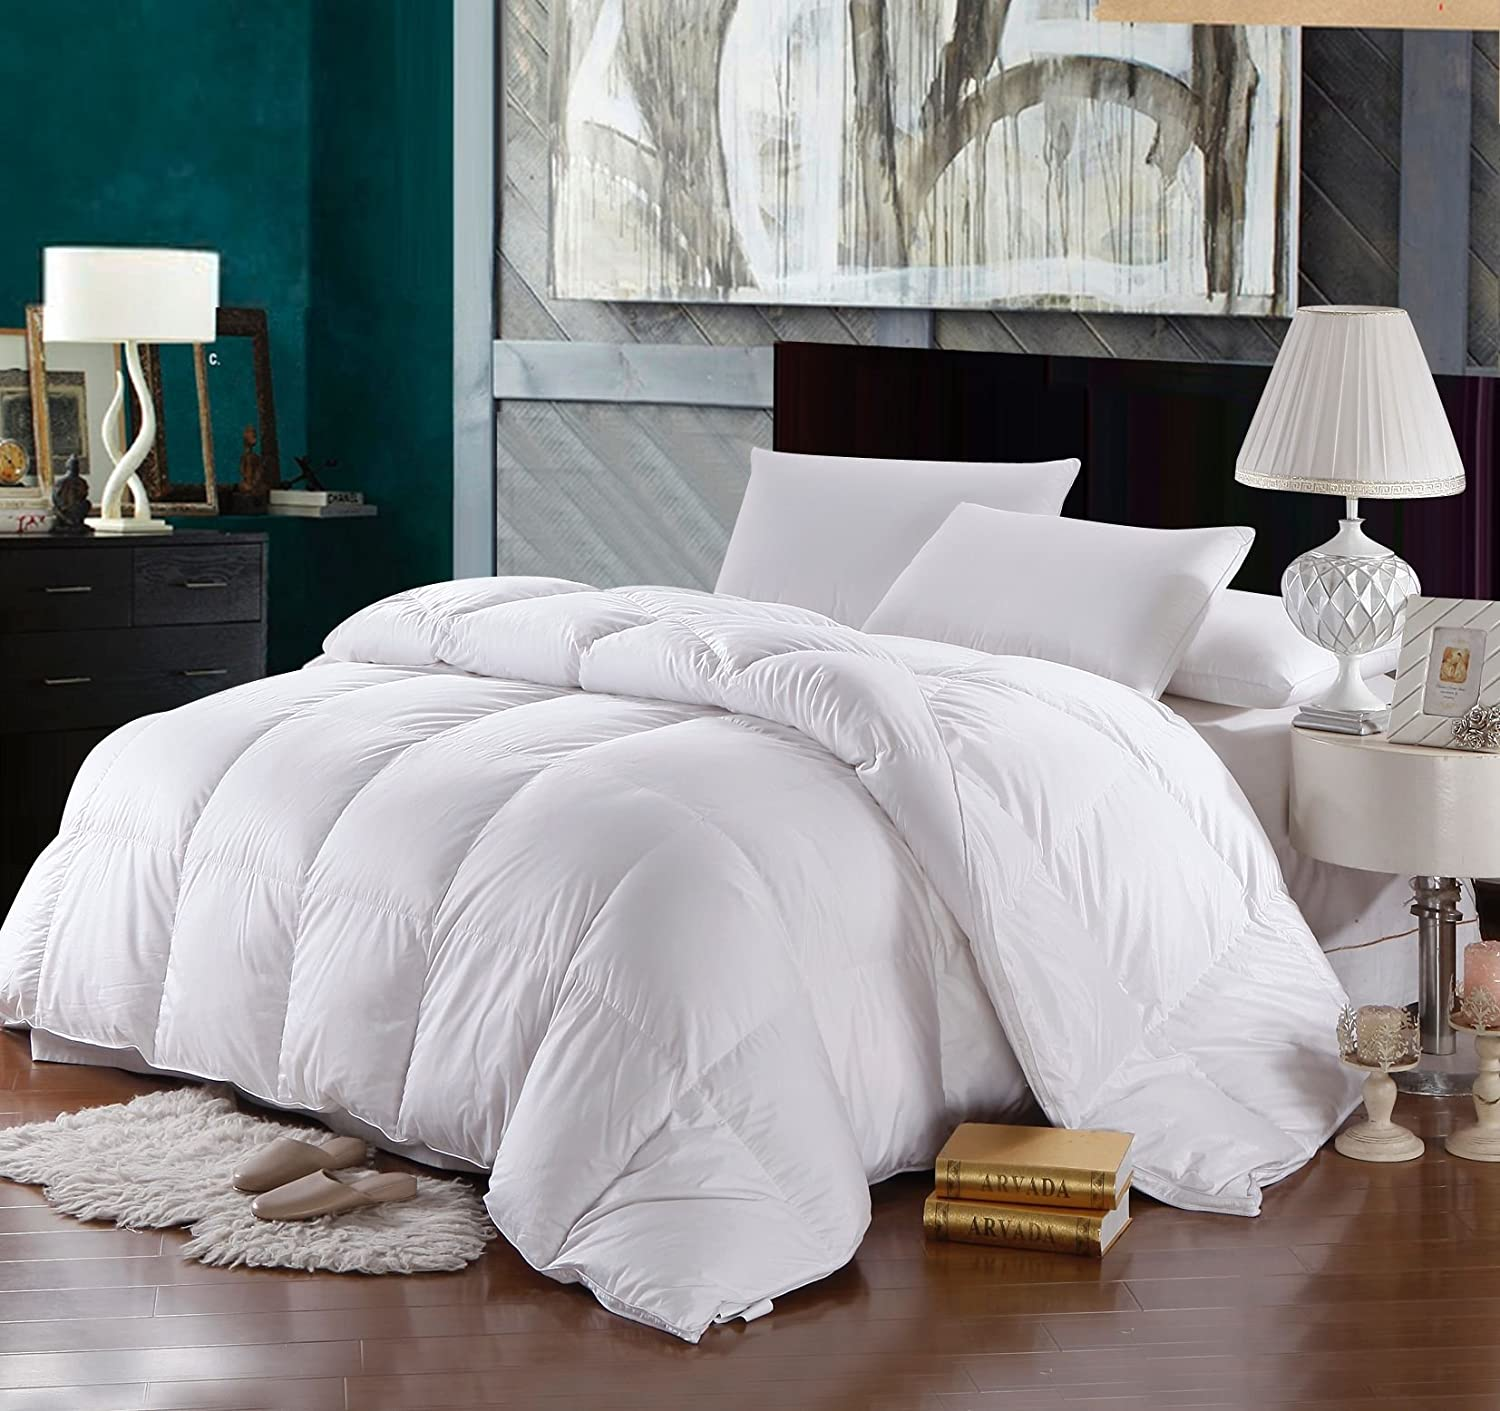 store company comforter duvets the loftaire web res and lacrosse hi down colored king comforters